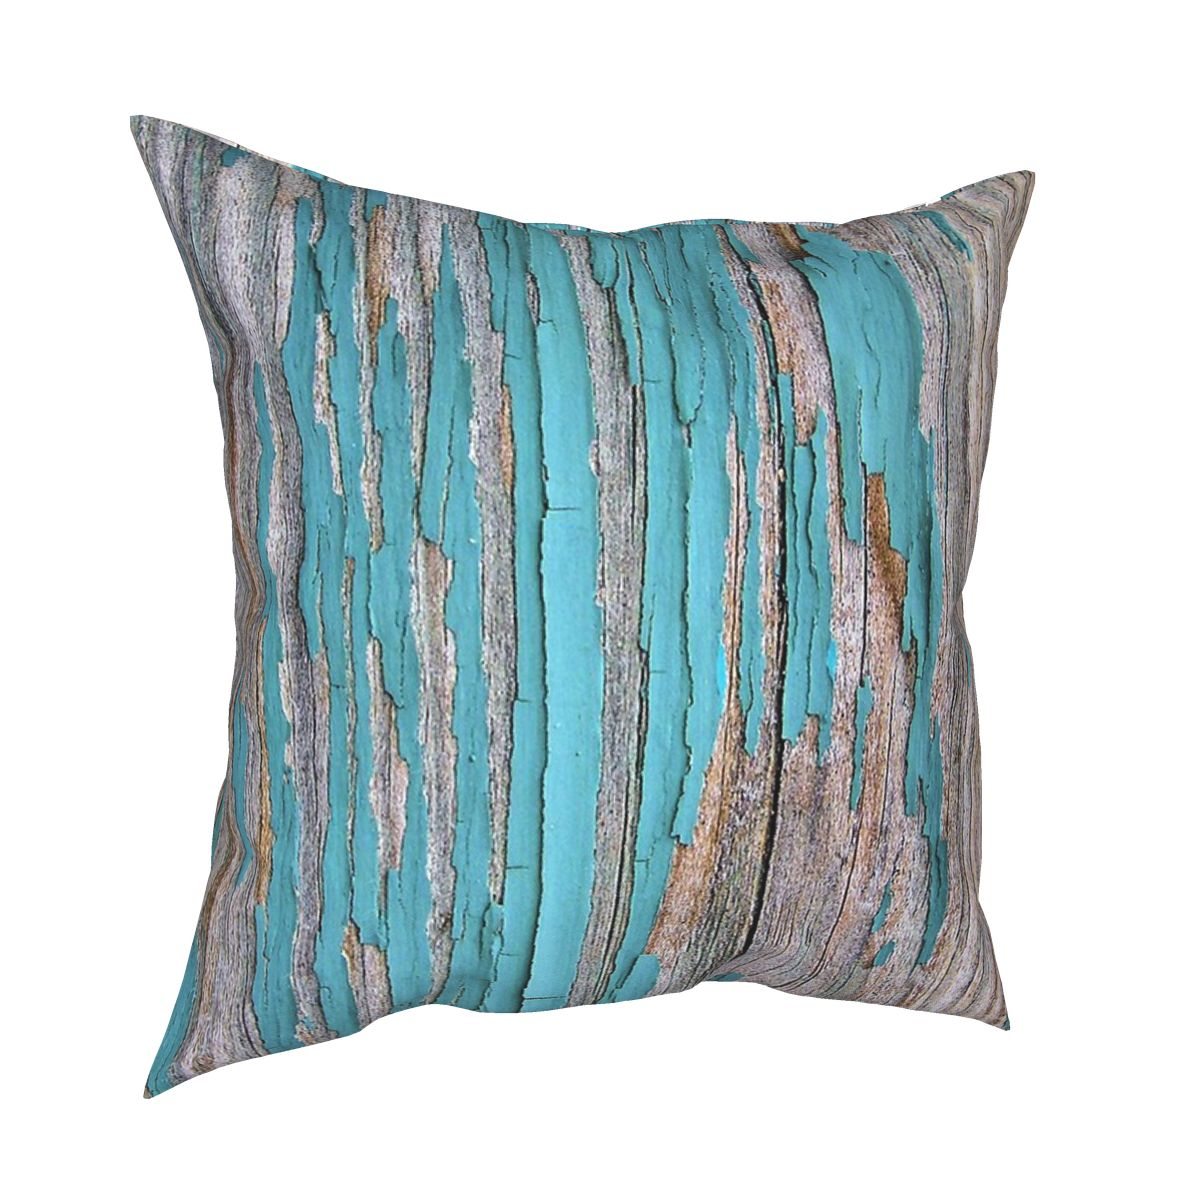 Shabby Rustic Weathered Wood Turquoise Cushions for Sofa Creative Cushion Covers Decorative Throw Pillows Cover for sofa home